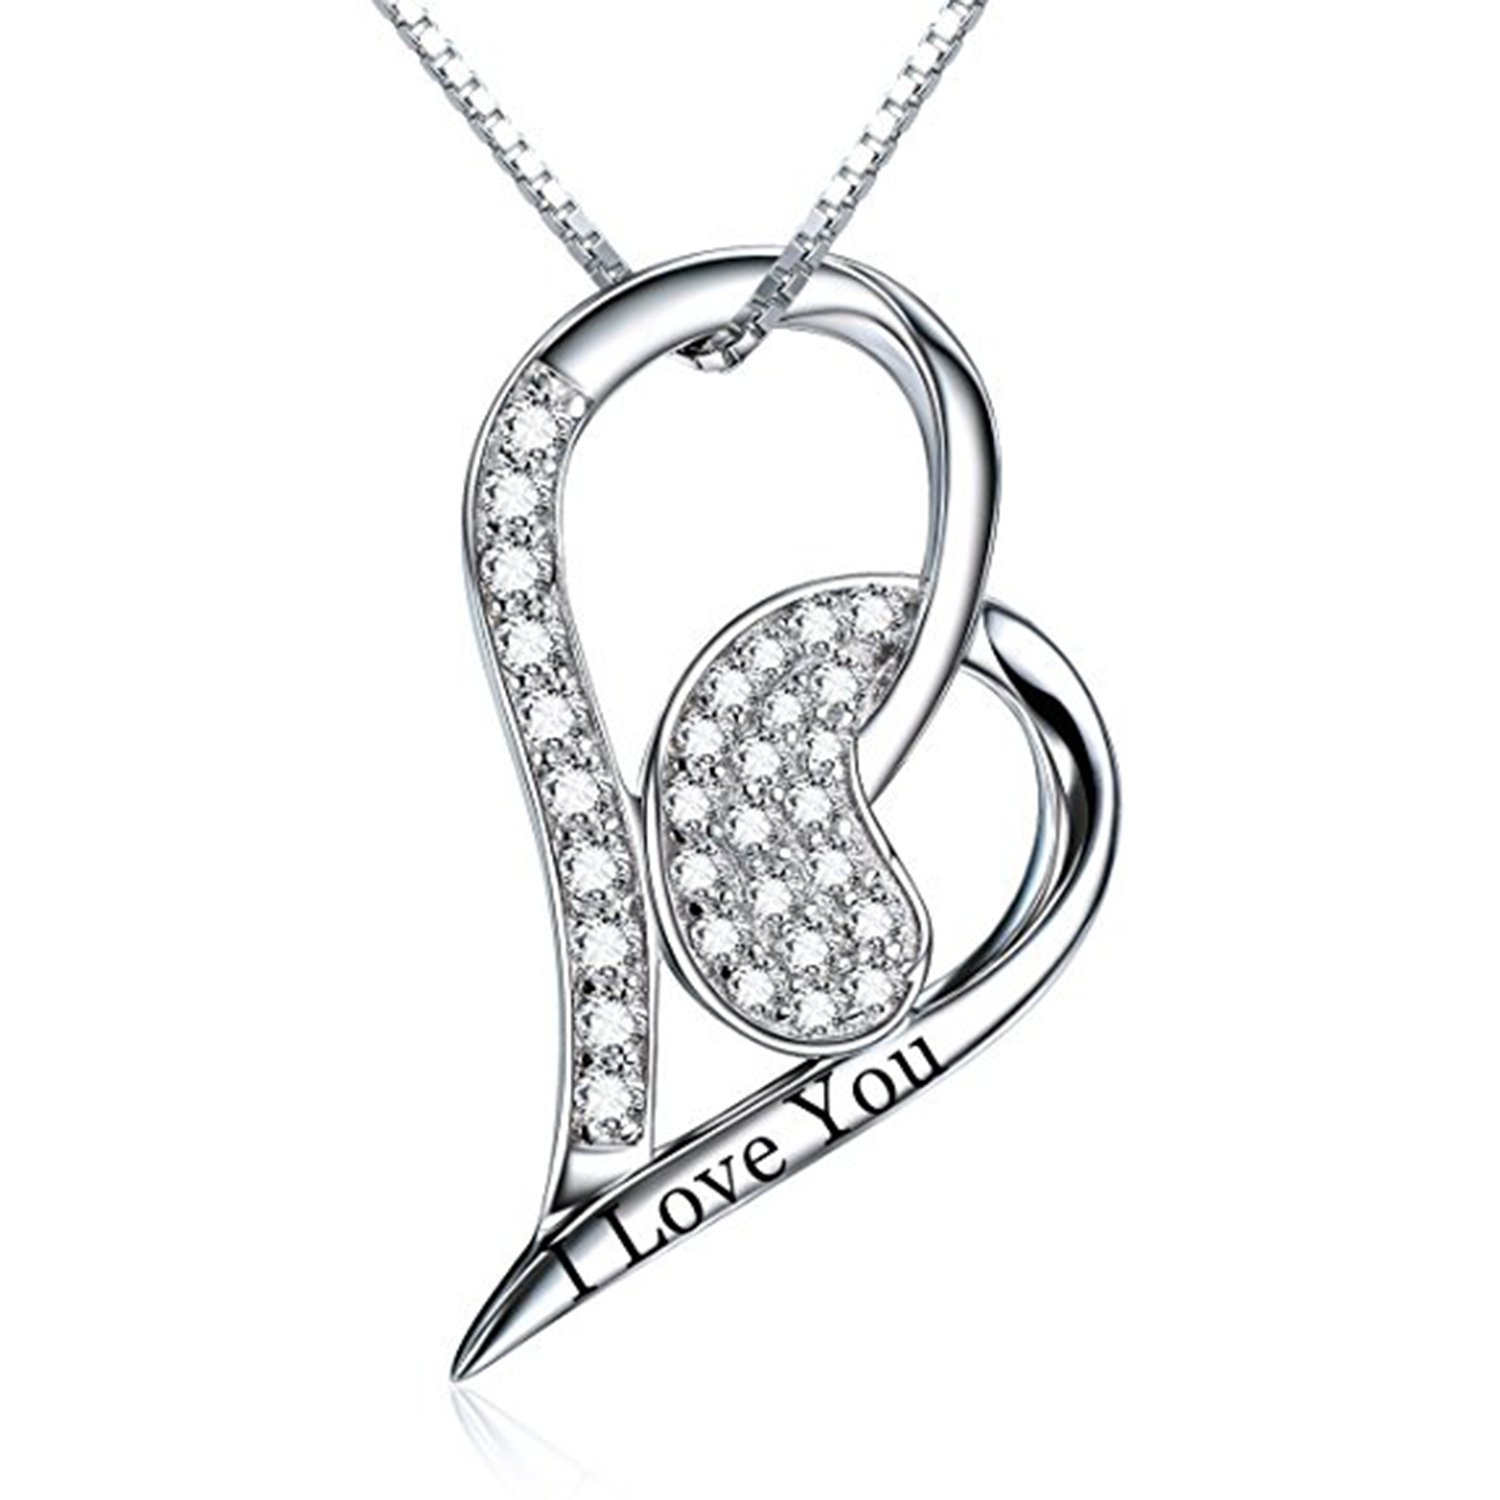 Simulated Diamond Studded Fashion Promise Love Heart Pendant Necklace in 14K White Gold Plated With Box Chain